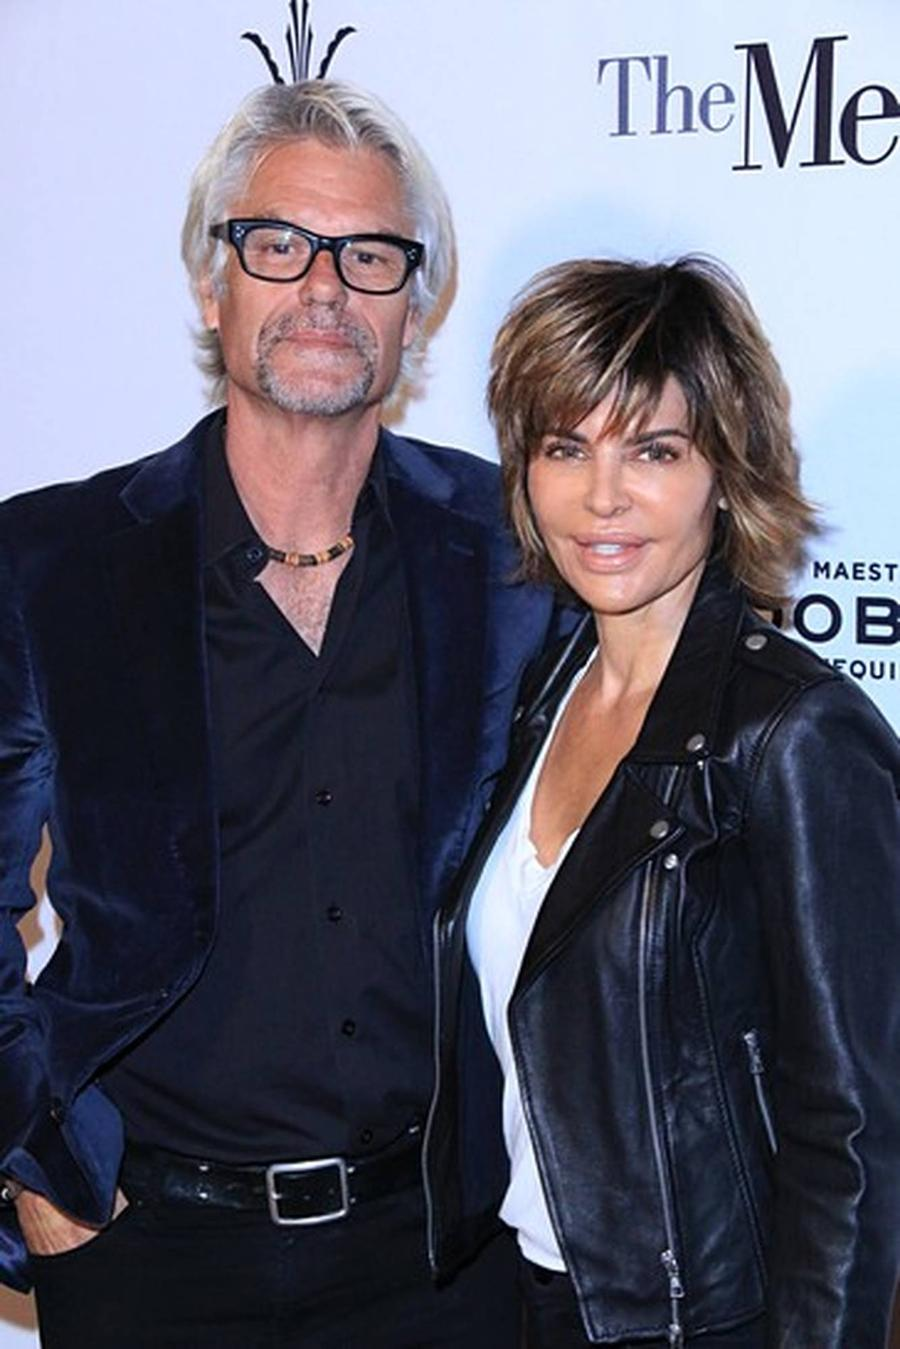 Heists Robbed Harry Hamlin And Lisa Rinna Of Their Fashion Boutique Dreams